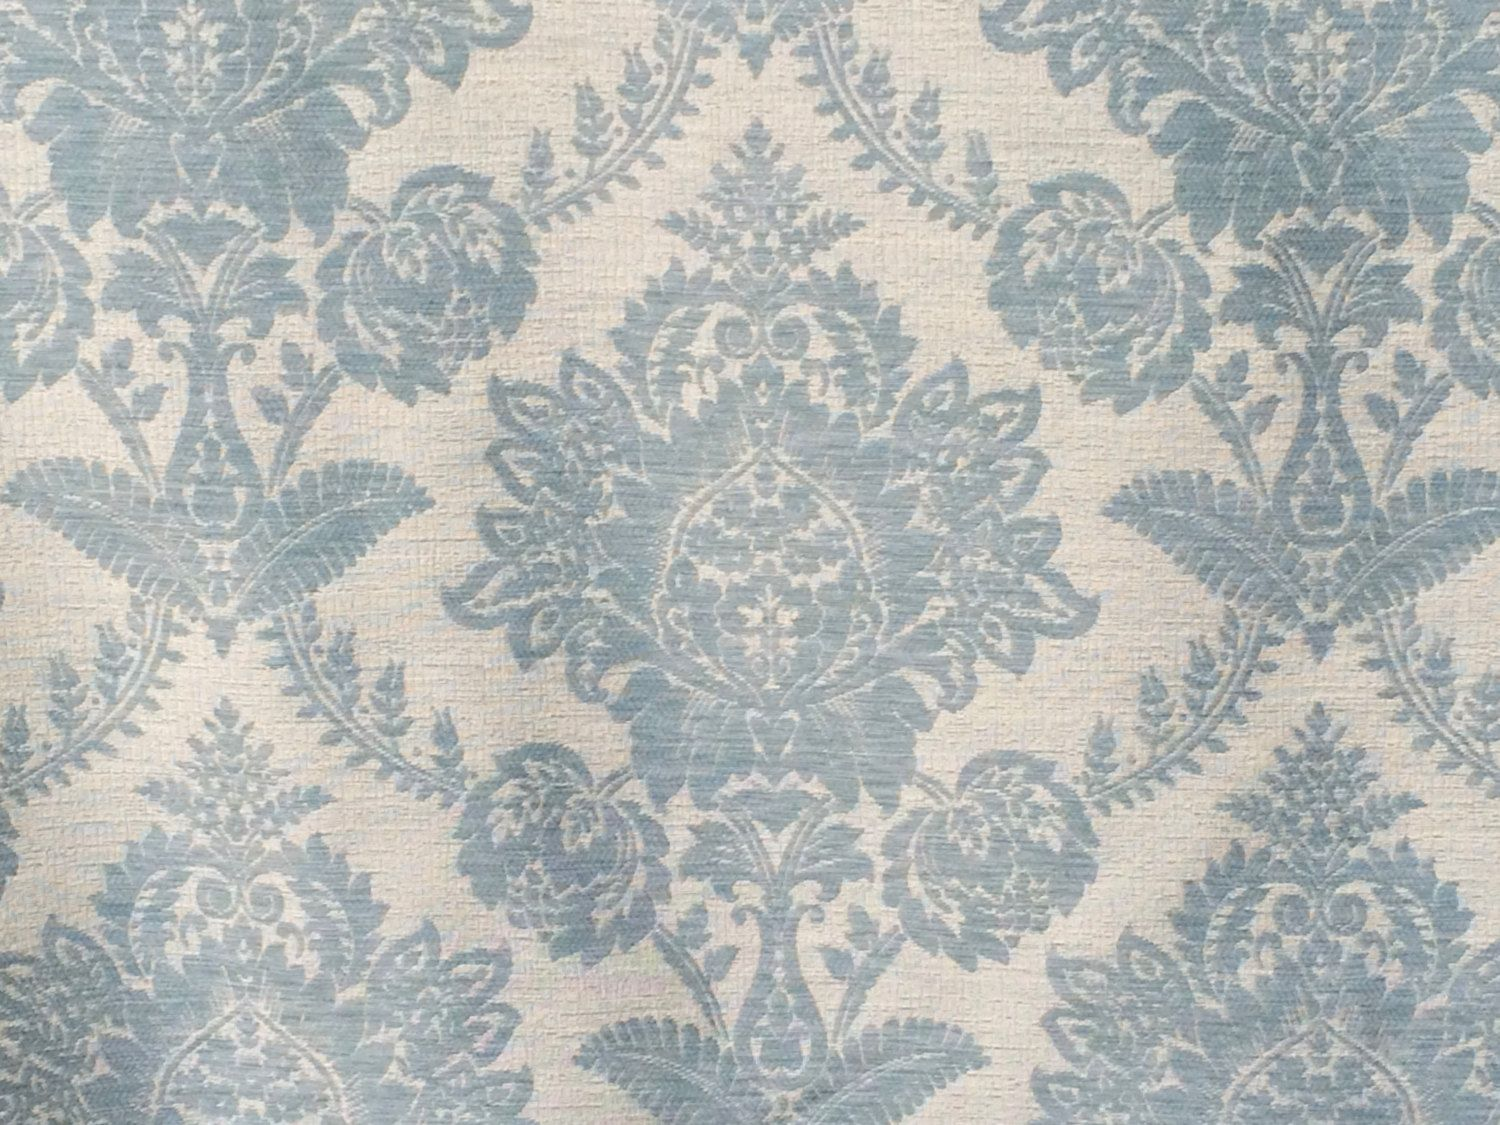 Curtain Fabric Wholesale Teal Blue Damask Curtain Fabric By The Yard Upholstery Fabric